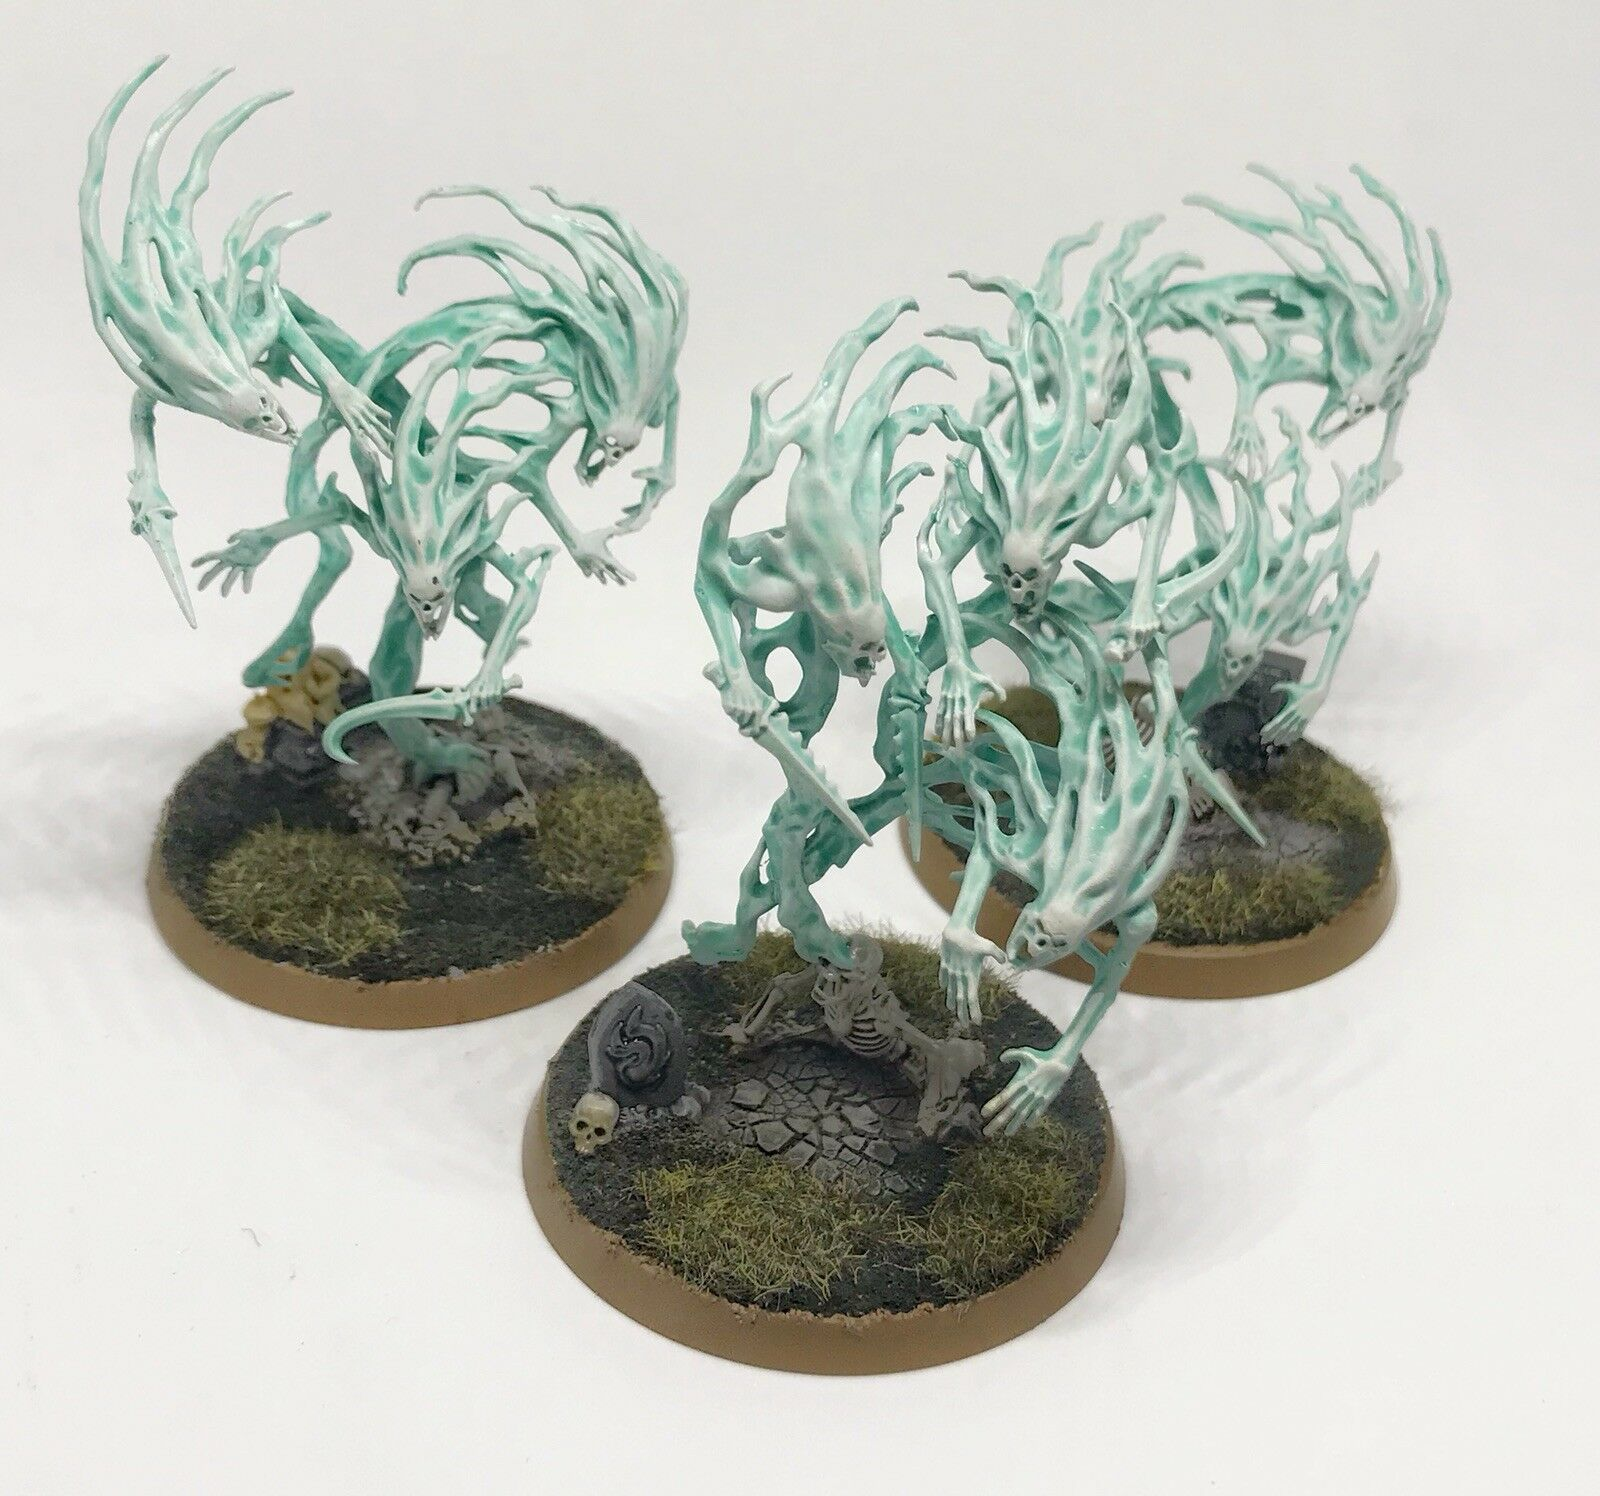 Spirit Hosts-Age of Sigmar mort nighthaunt miniatures